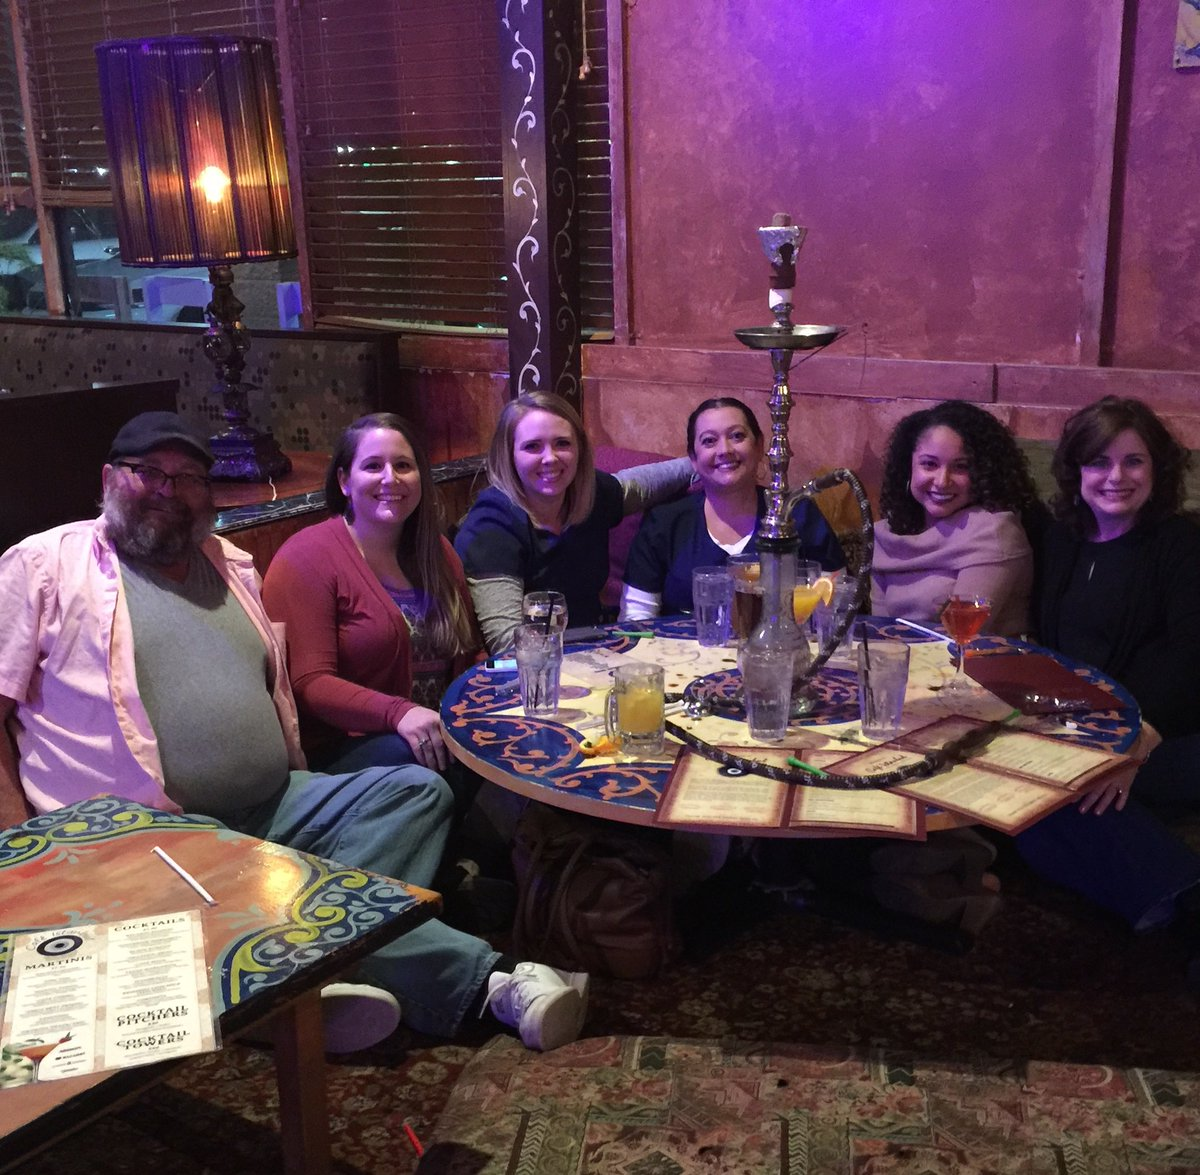 Me and Abby with some of her coworkers at Cafe Istanbul kennesaw.😃